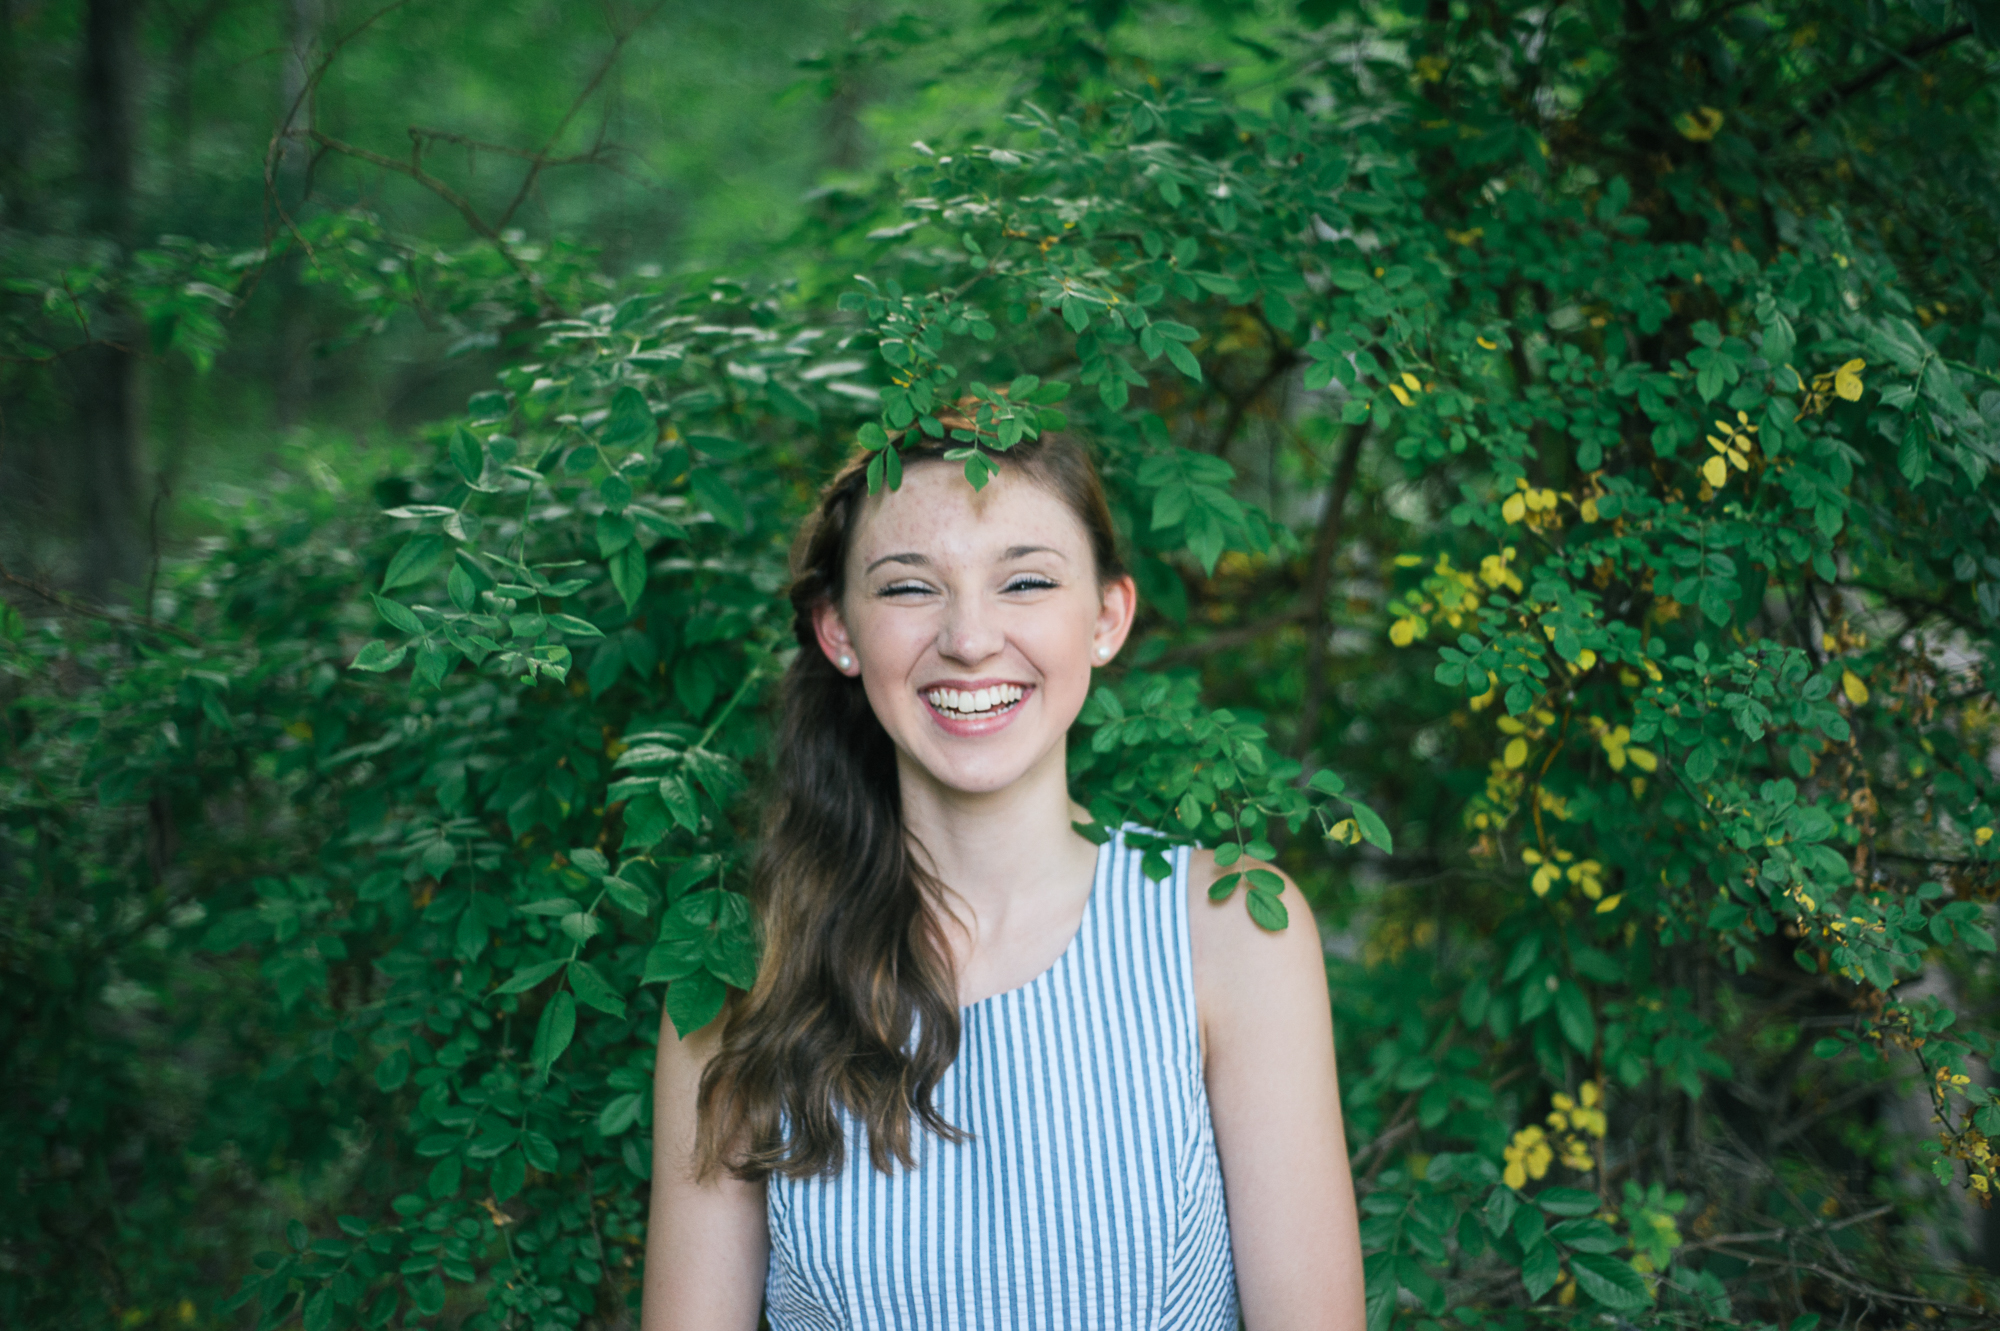 savannah-senior-portrait-photographer-senior-portrait-photographer-in-savannah-georgia